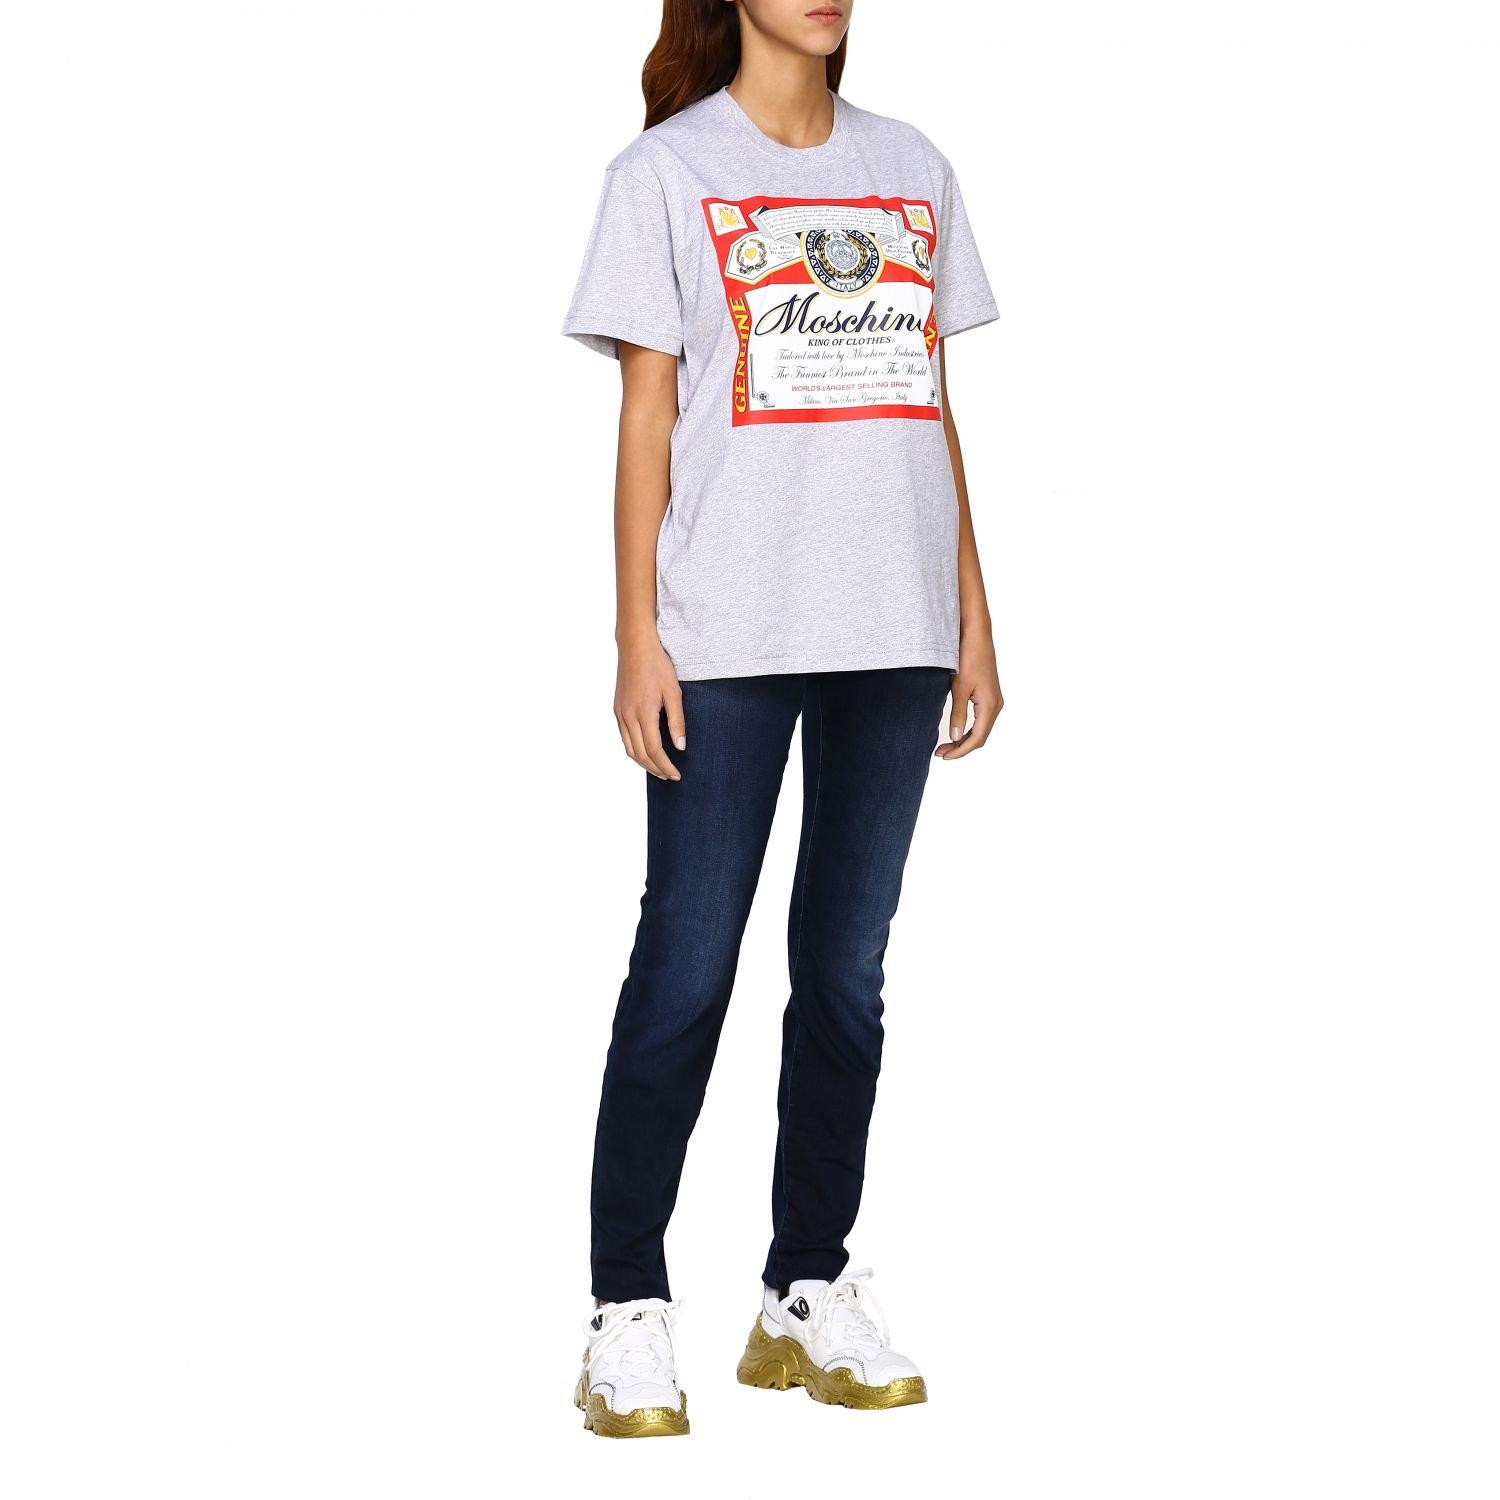 T-shirt Capsule Collection Moschino X Budweiser in jersey di cotone rosso 2